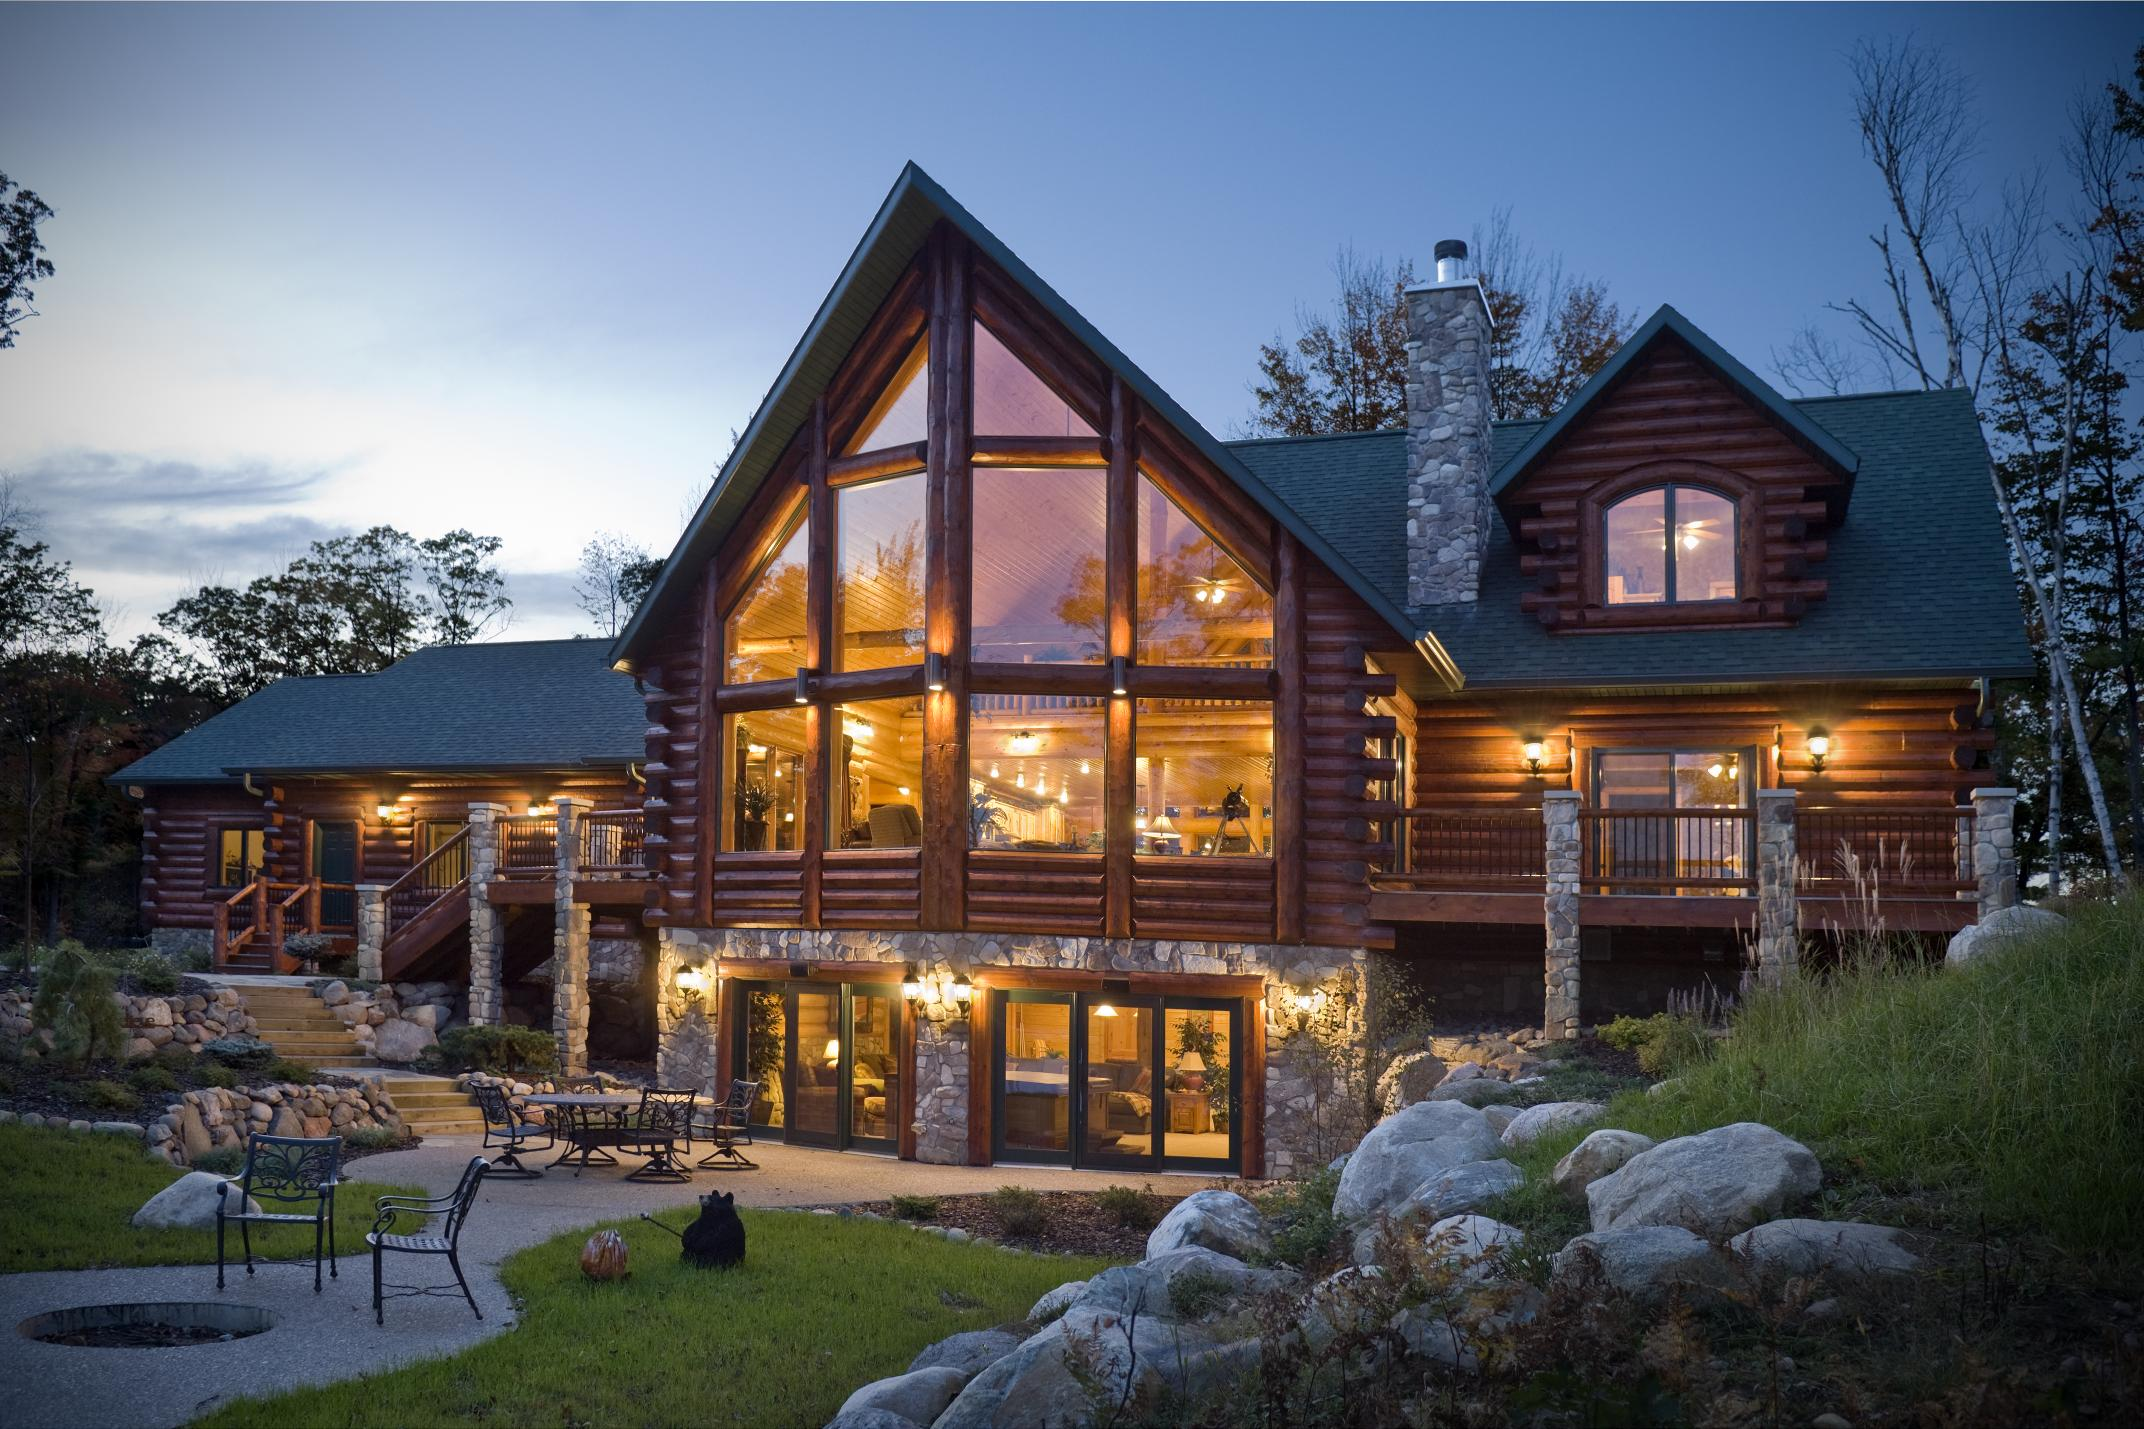 Sashco log home products and golden eagle log homes expand for House log